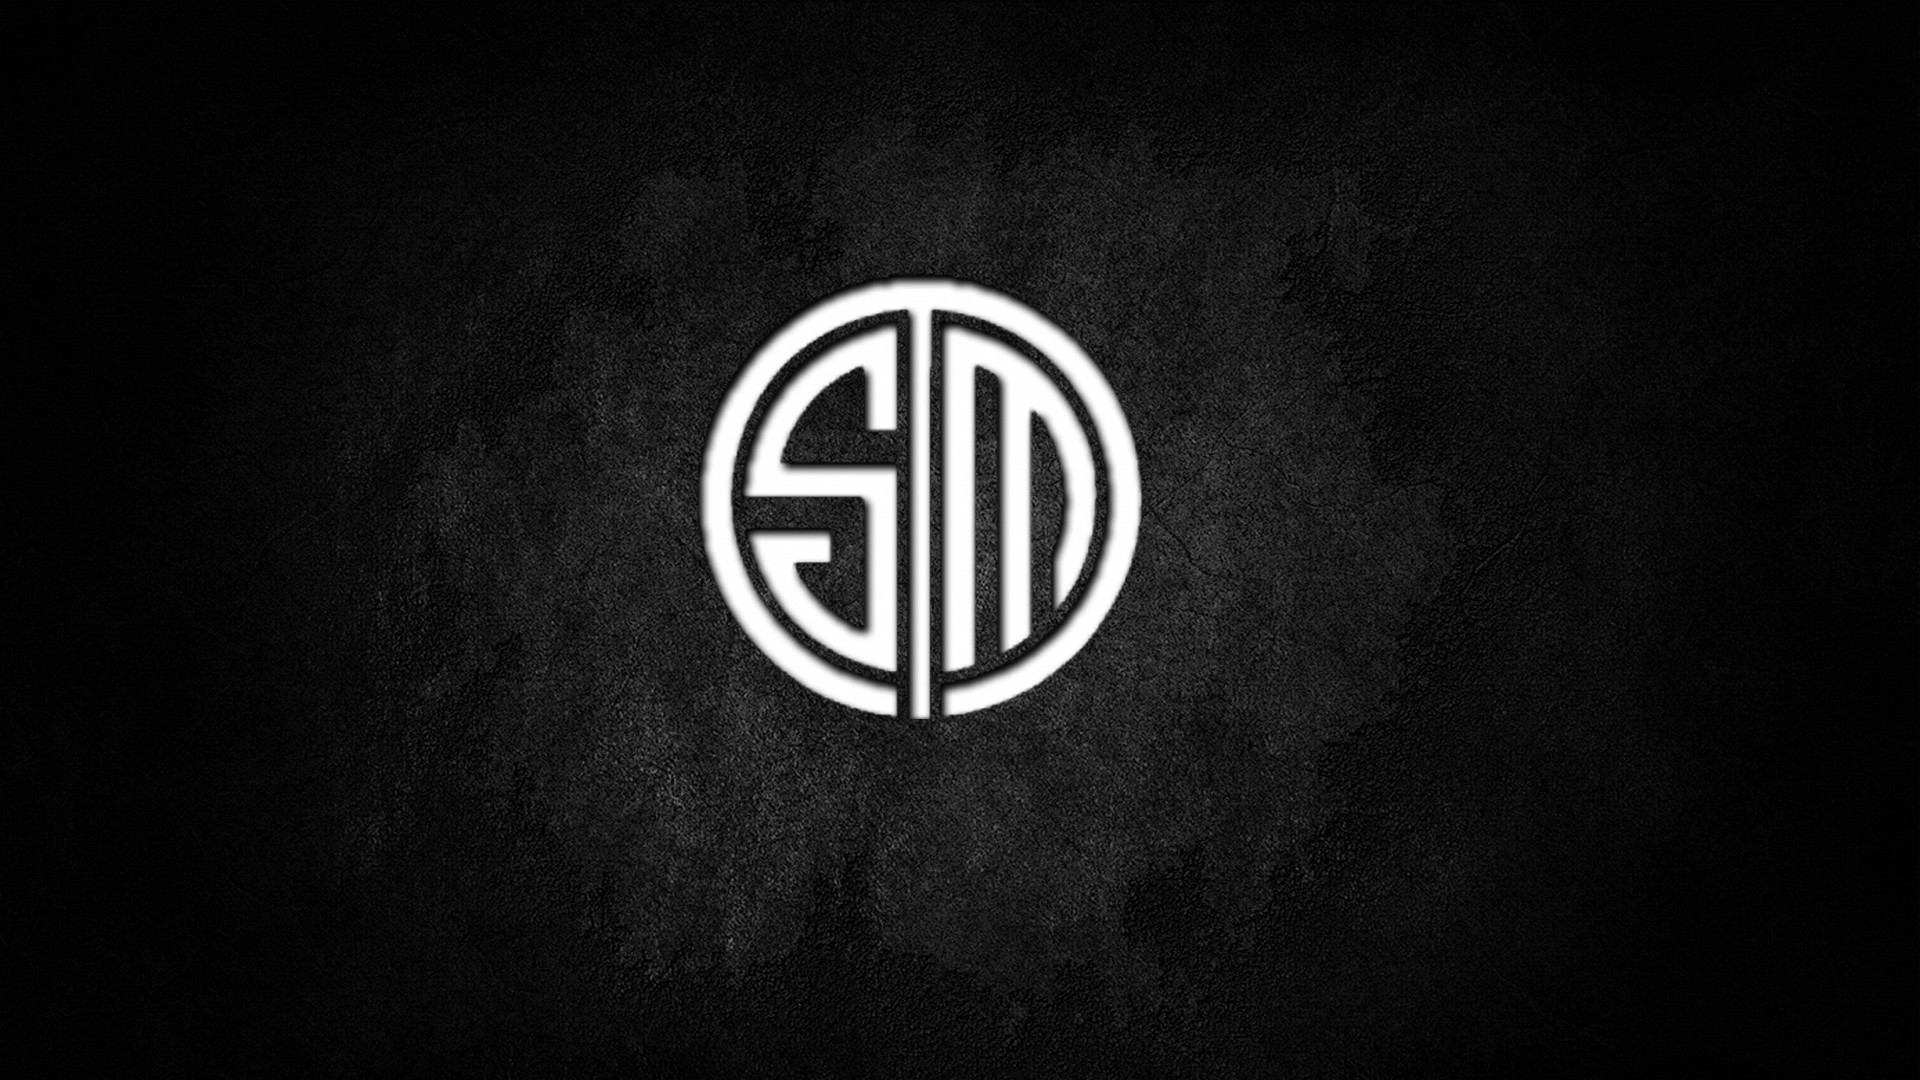 Team Solomid Wallpapers 90 Pictures This is a logo for a local business, it represents the letters tsm + mountain. team solomid wallpapers 90 pictures